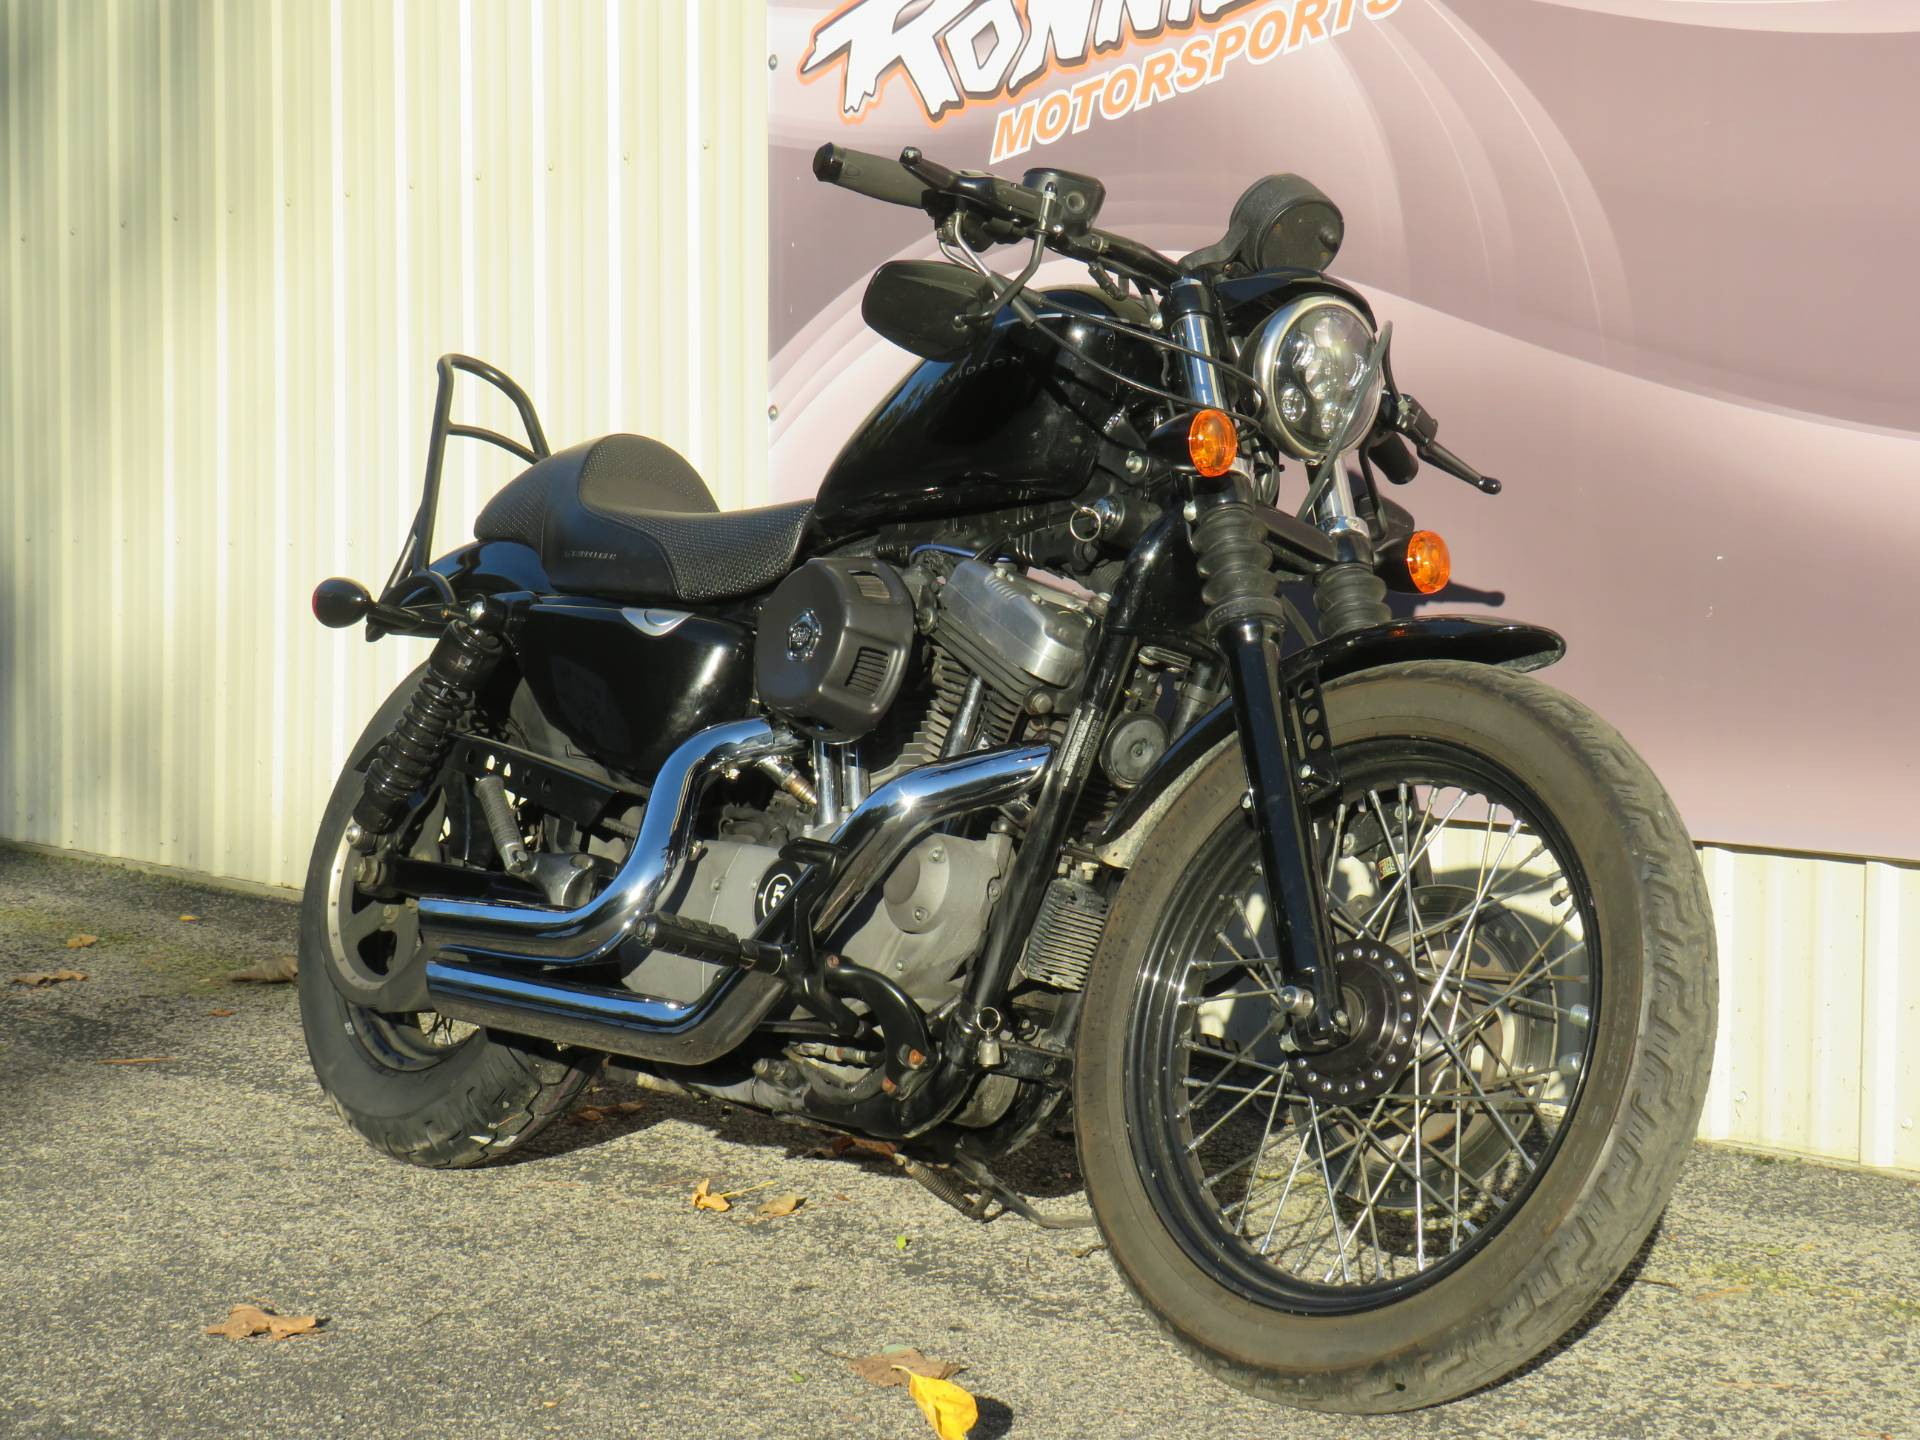 Used 2007 Harley Davidson Sportster 1200 Nightster Motorcycles In Guilderland Ny Stock Number 456135 Ronniesmotorsports Com